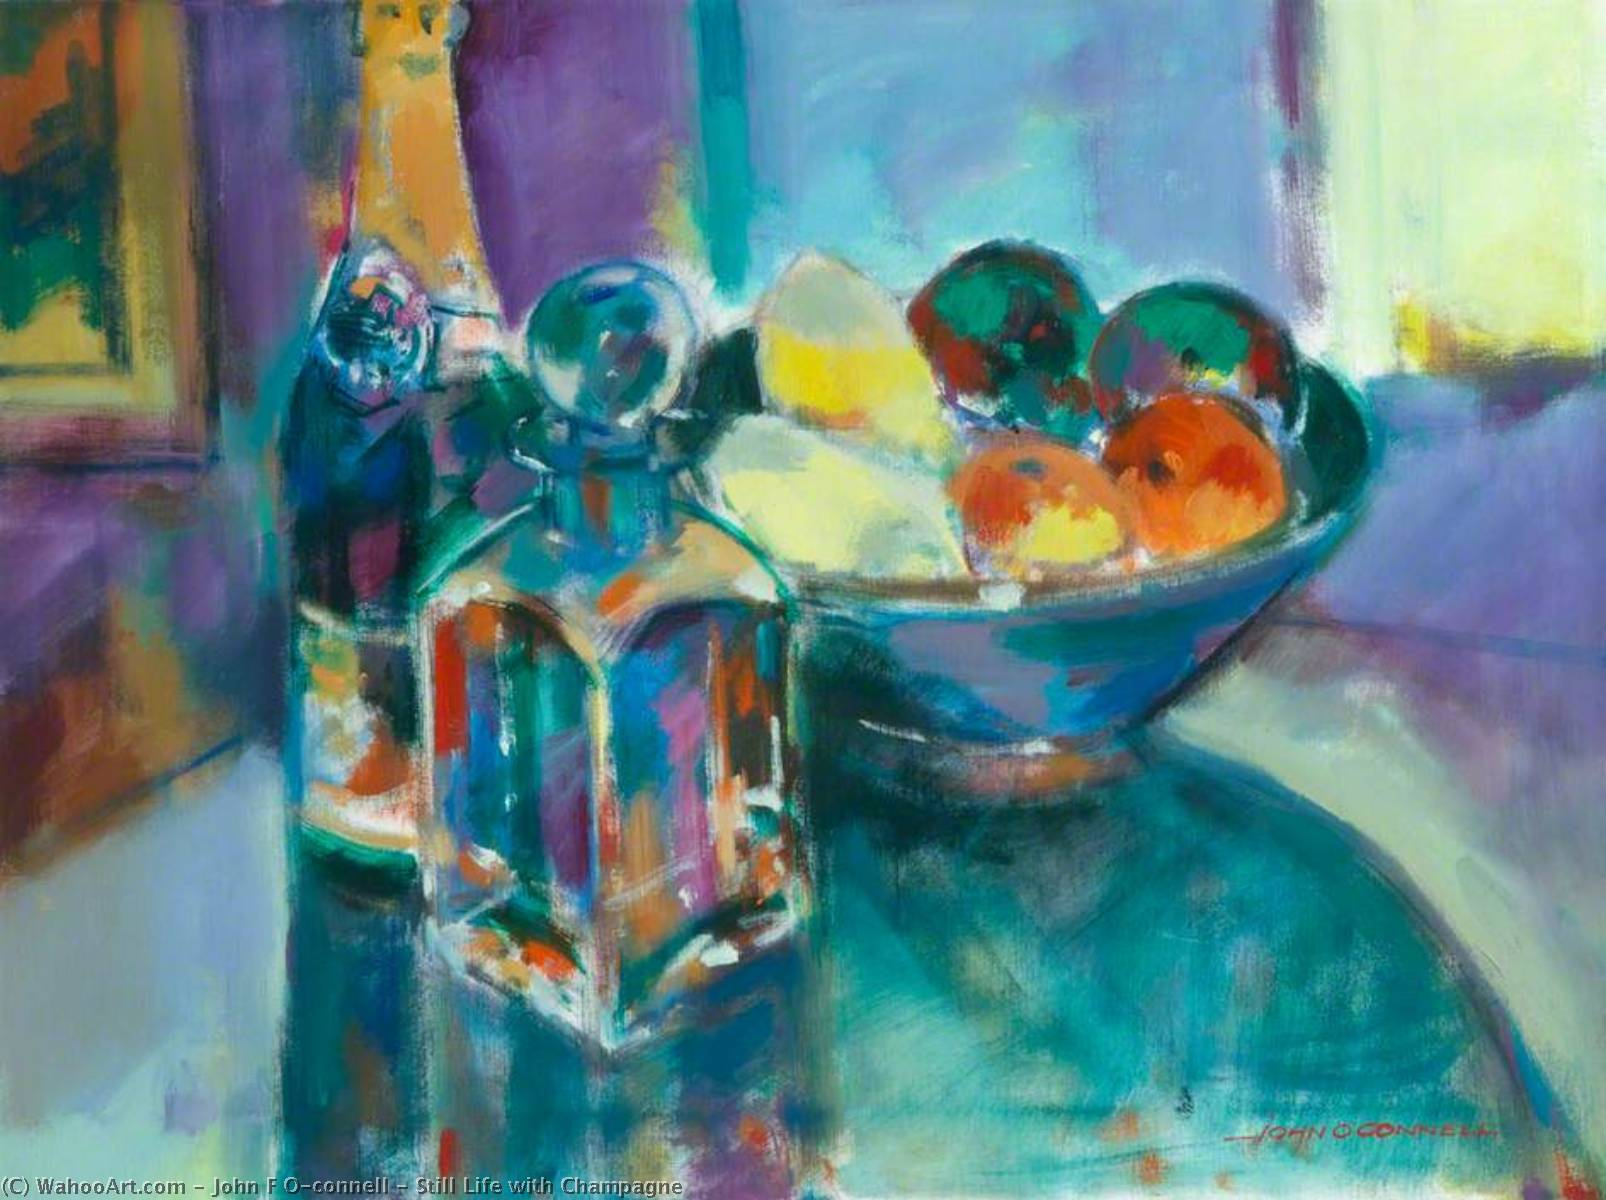 Still Life with Champagne by John F O'connell | Paintings Reproductions John F O'connell | WahooArt.com